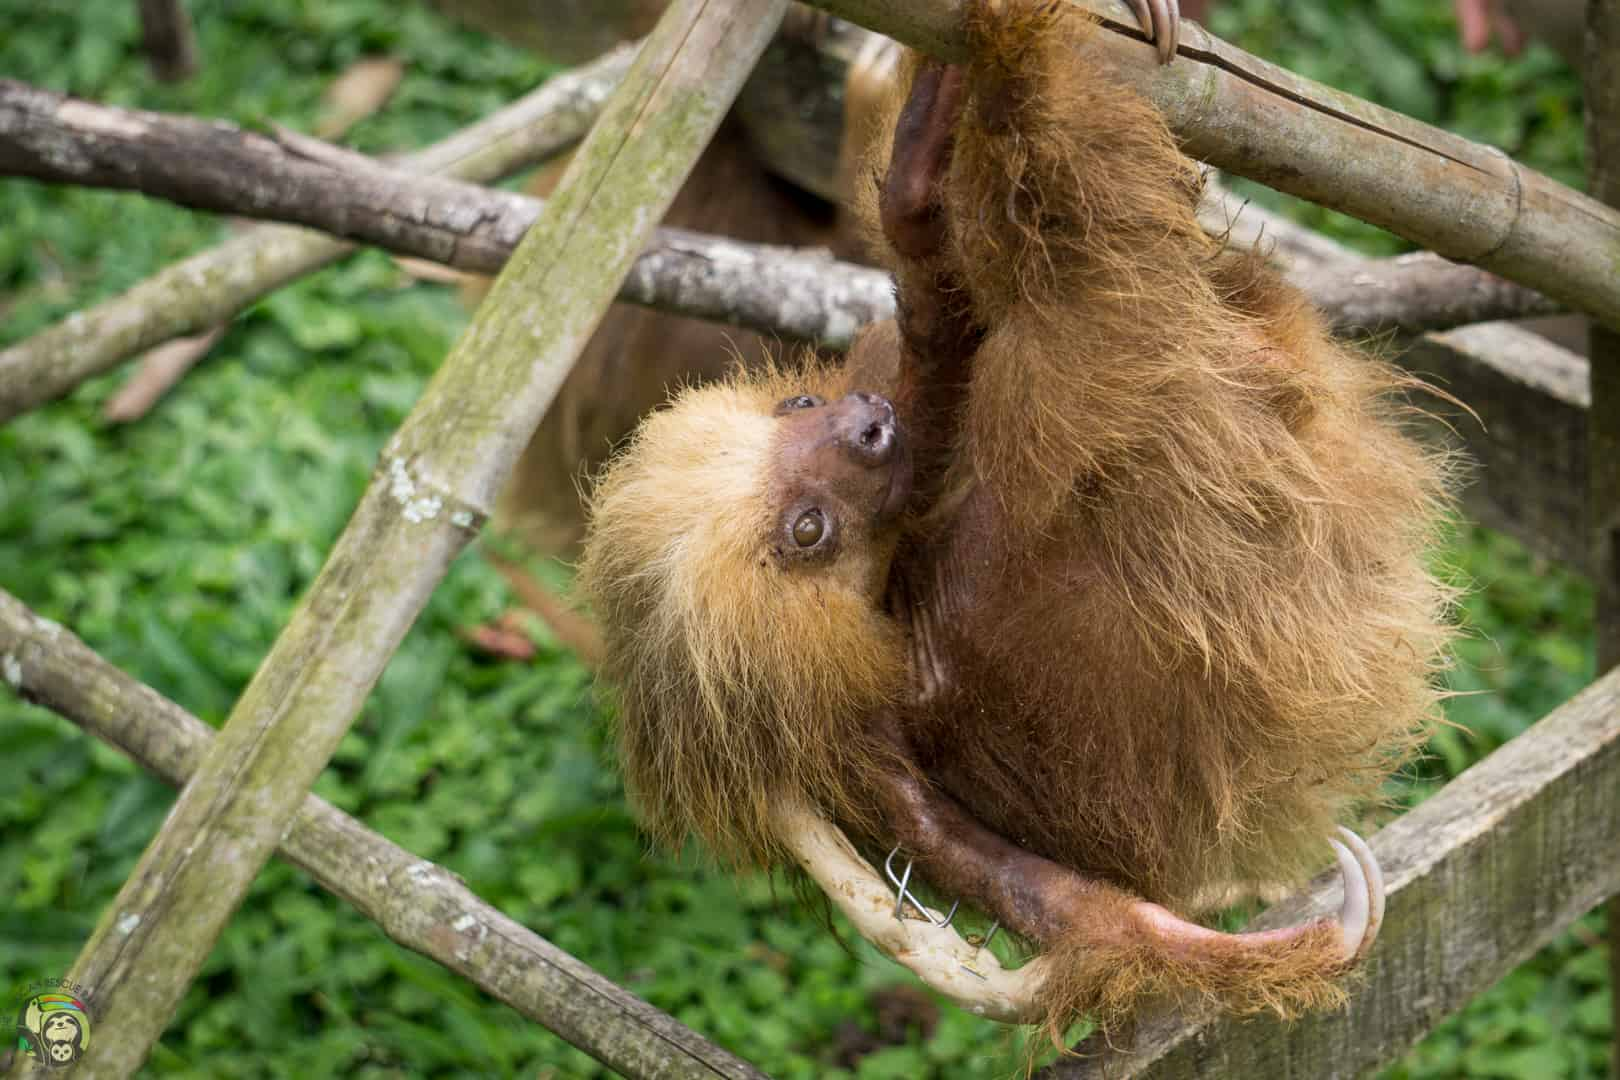 Oatmeal, a sloth that survived electrocution